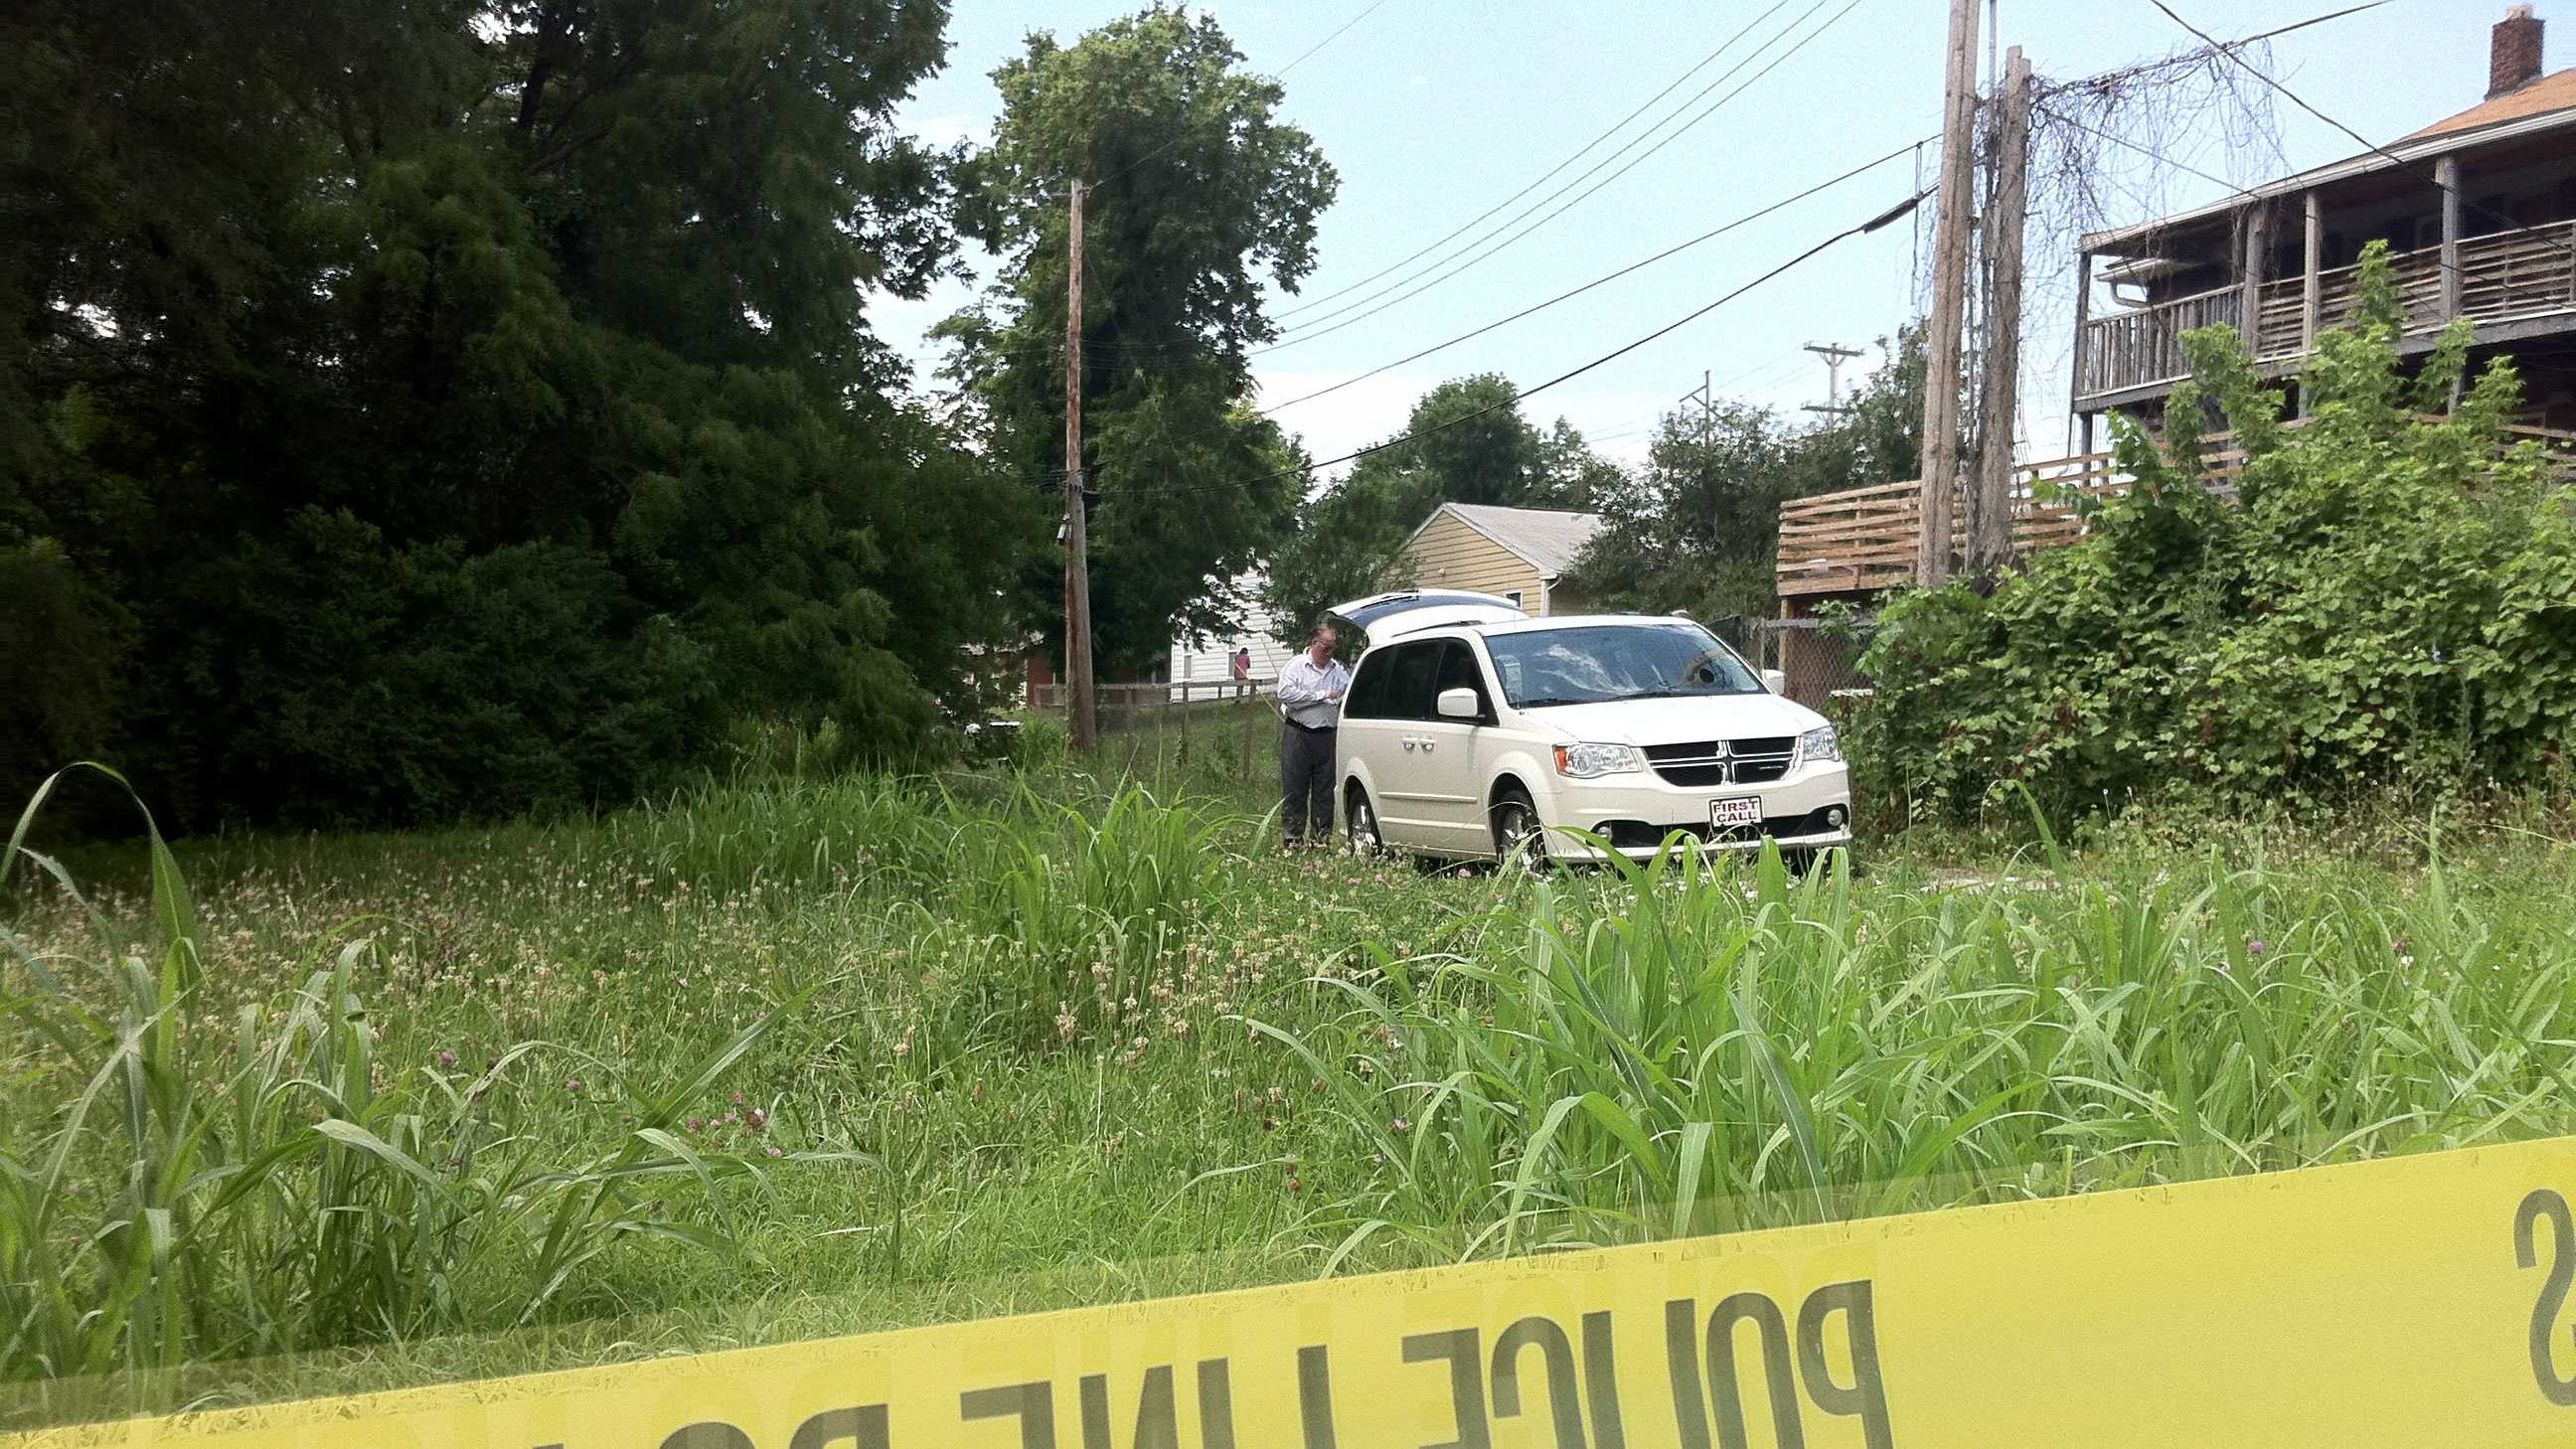 Decomposing body found in KCK